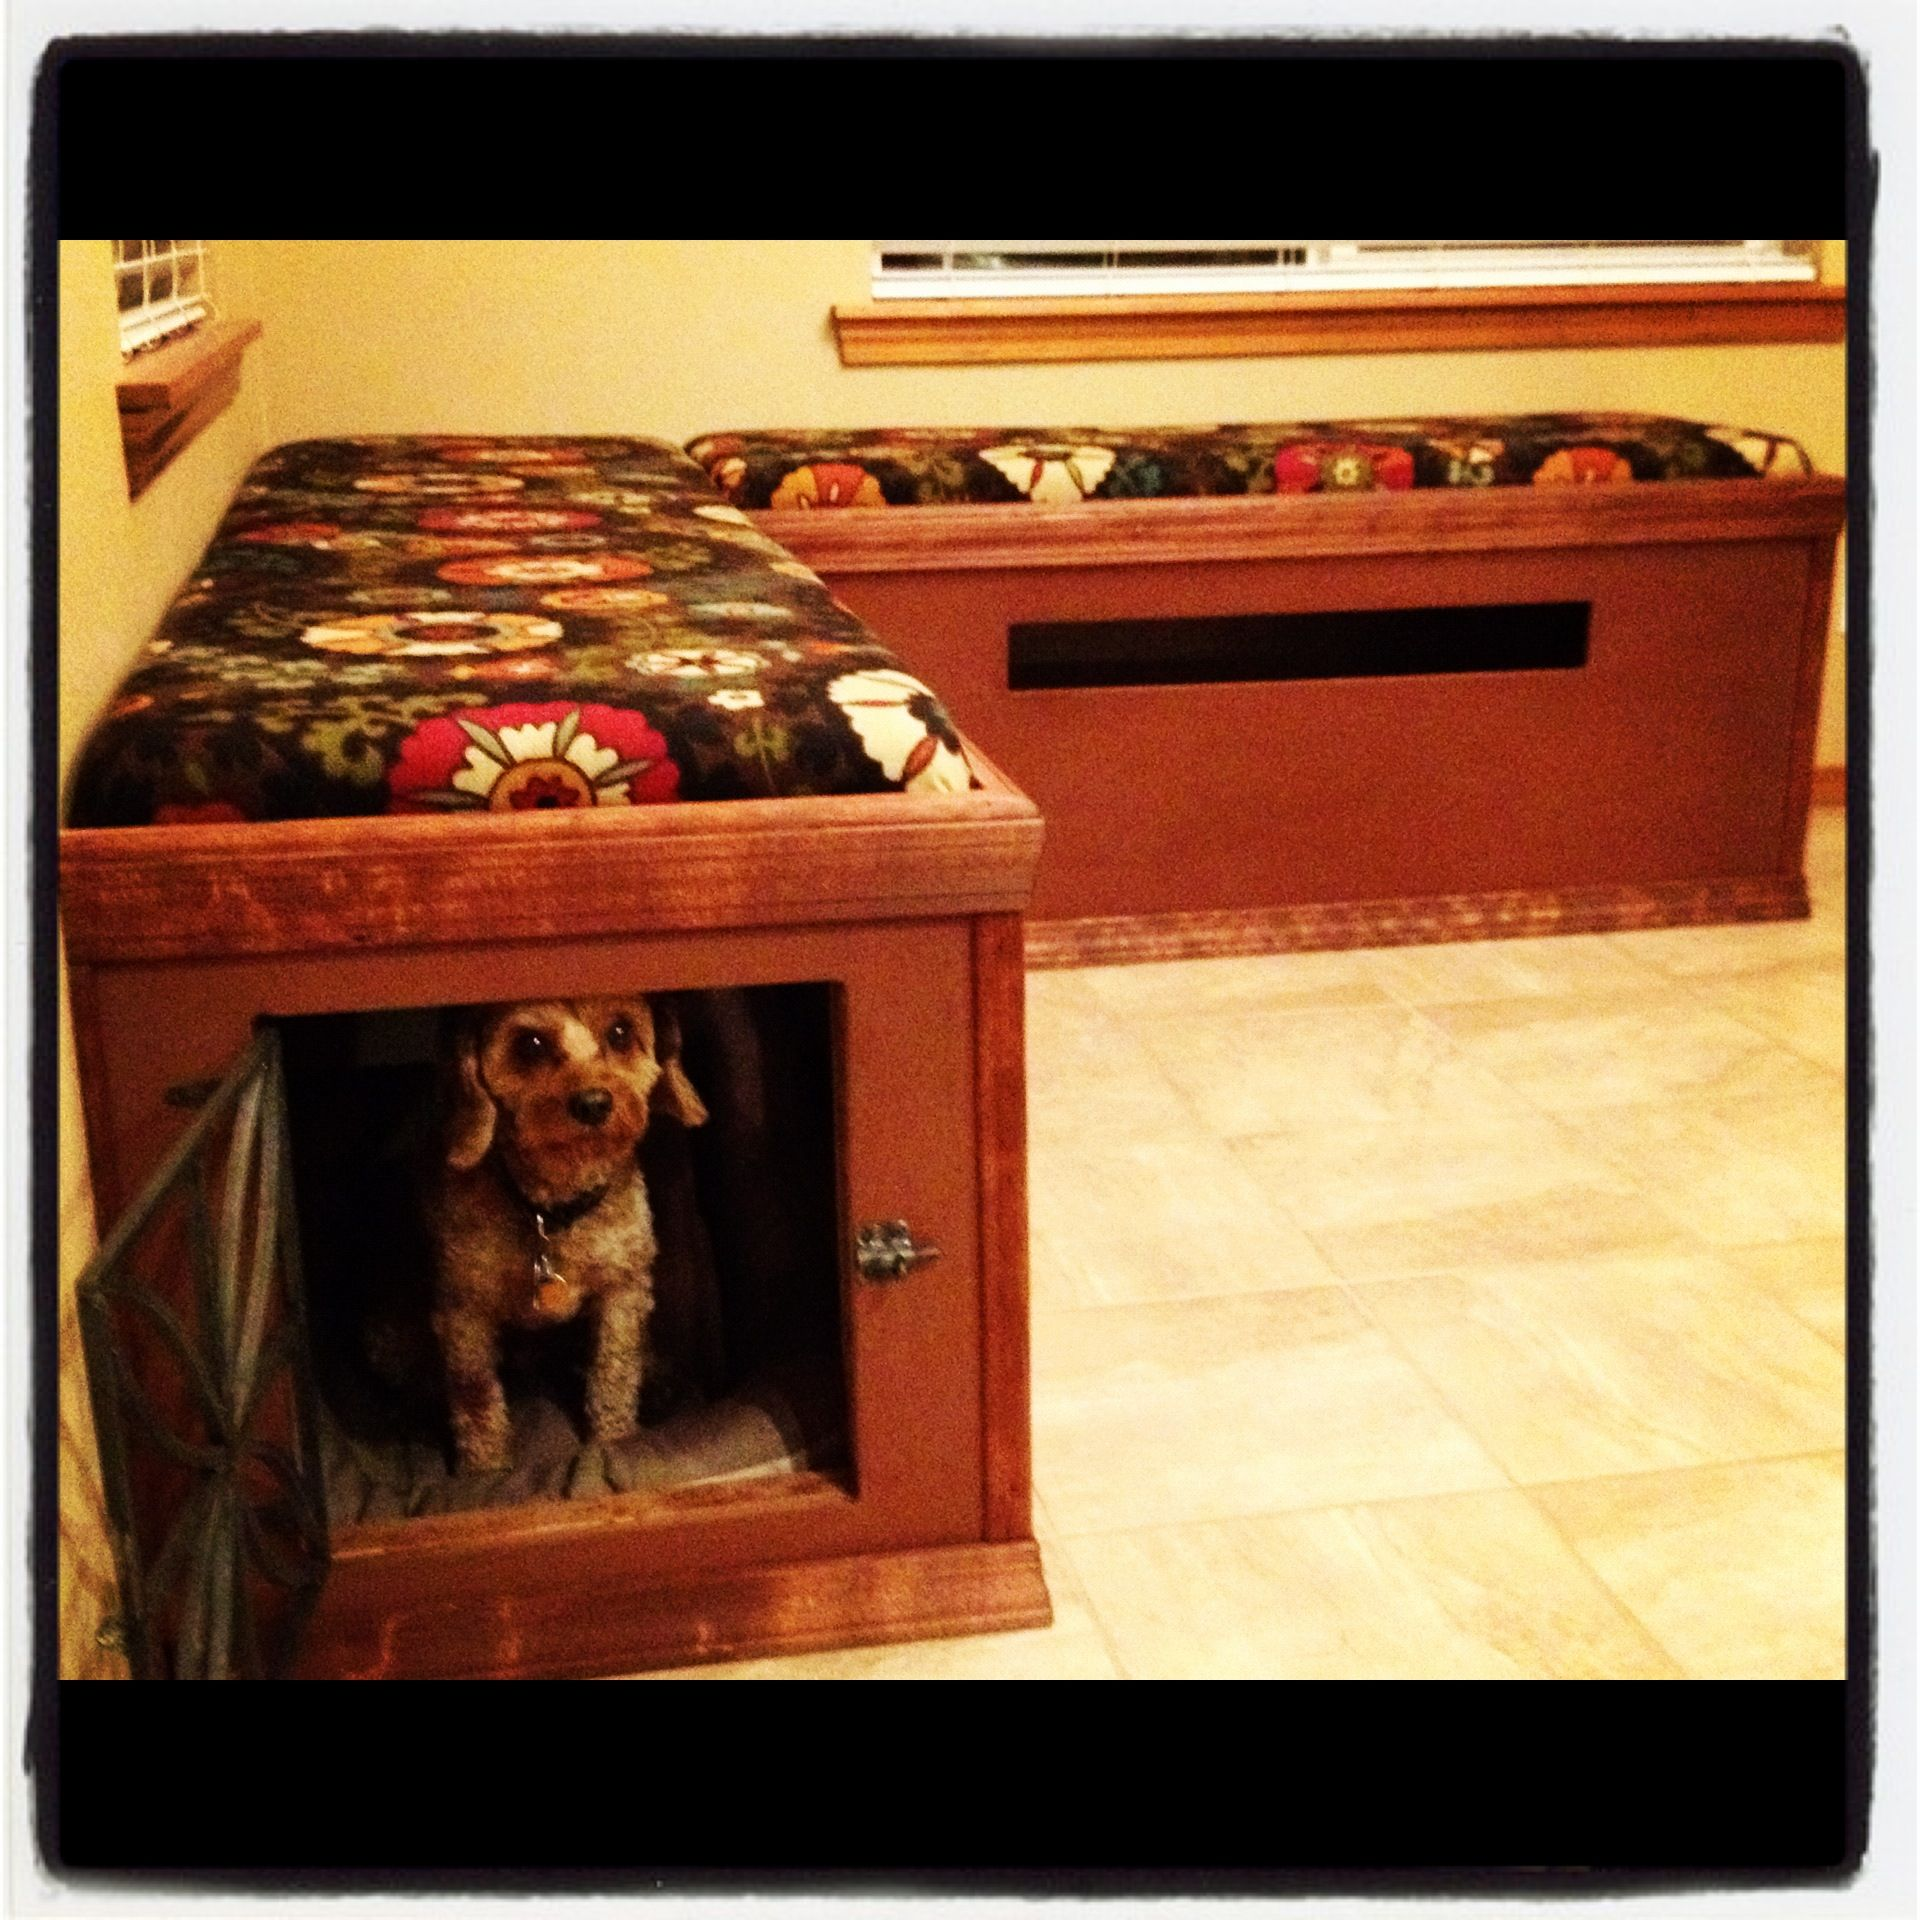 Pin By Megan Vance On Finished Projects Crate Bench Wooden Dog Kennels Dog Bench